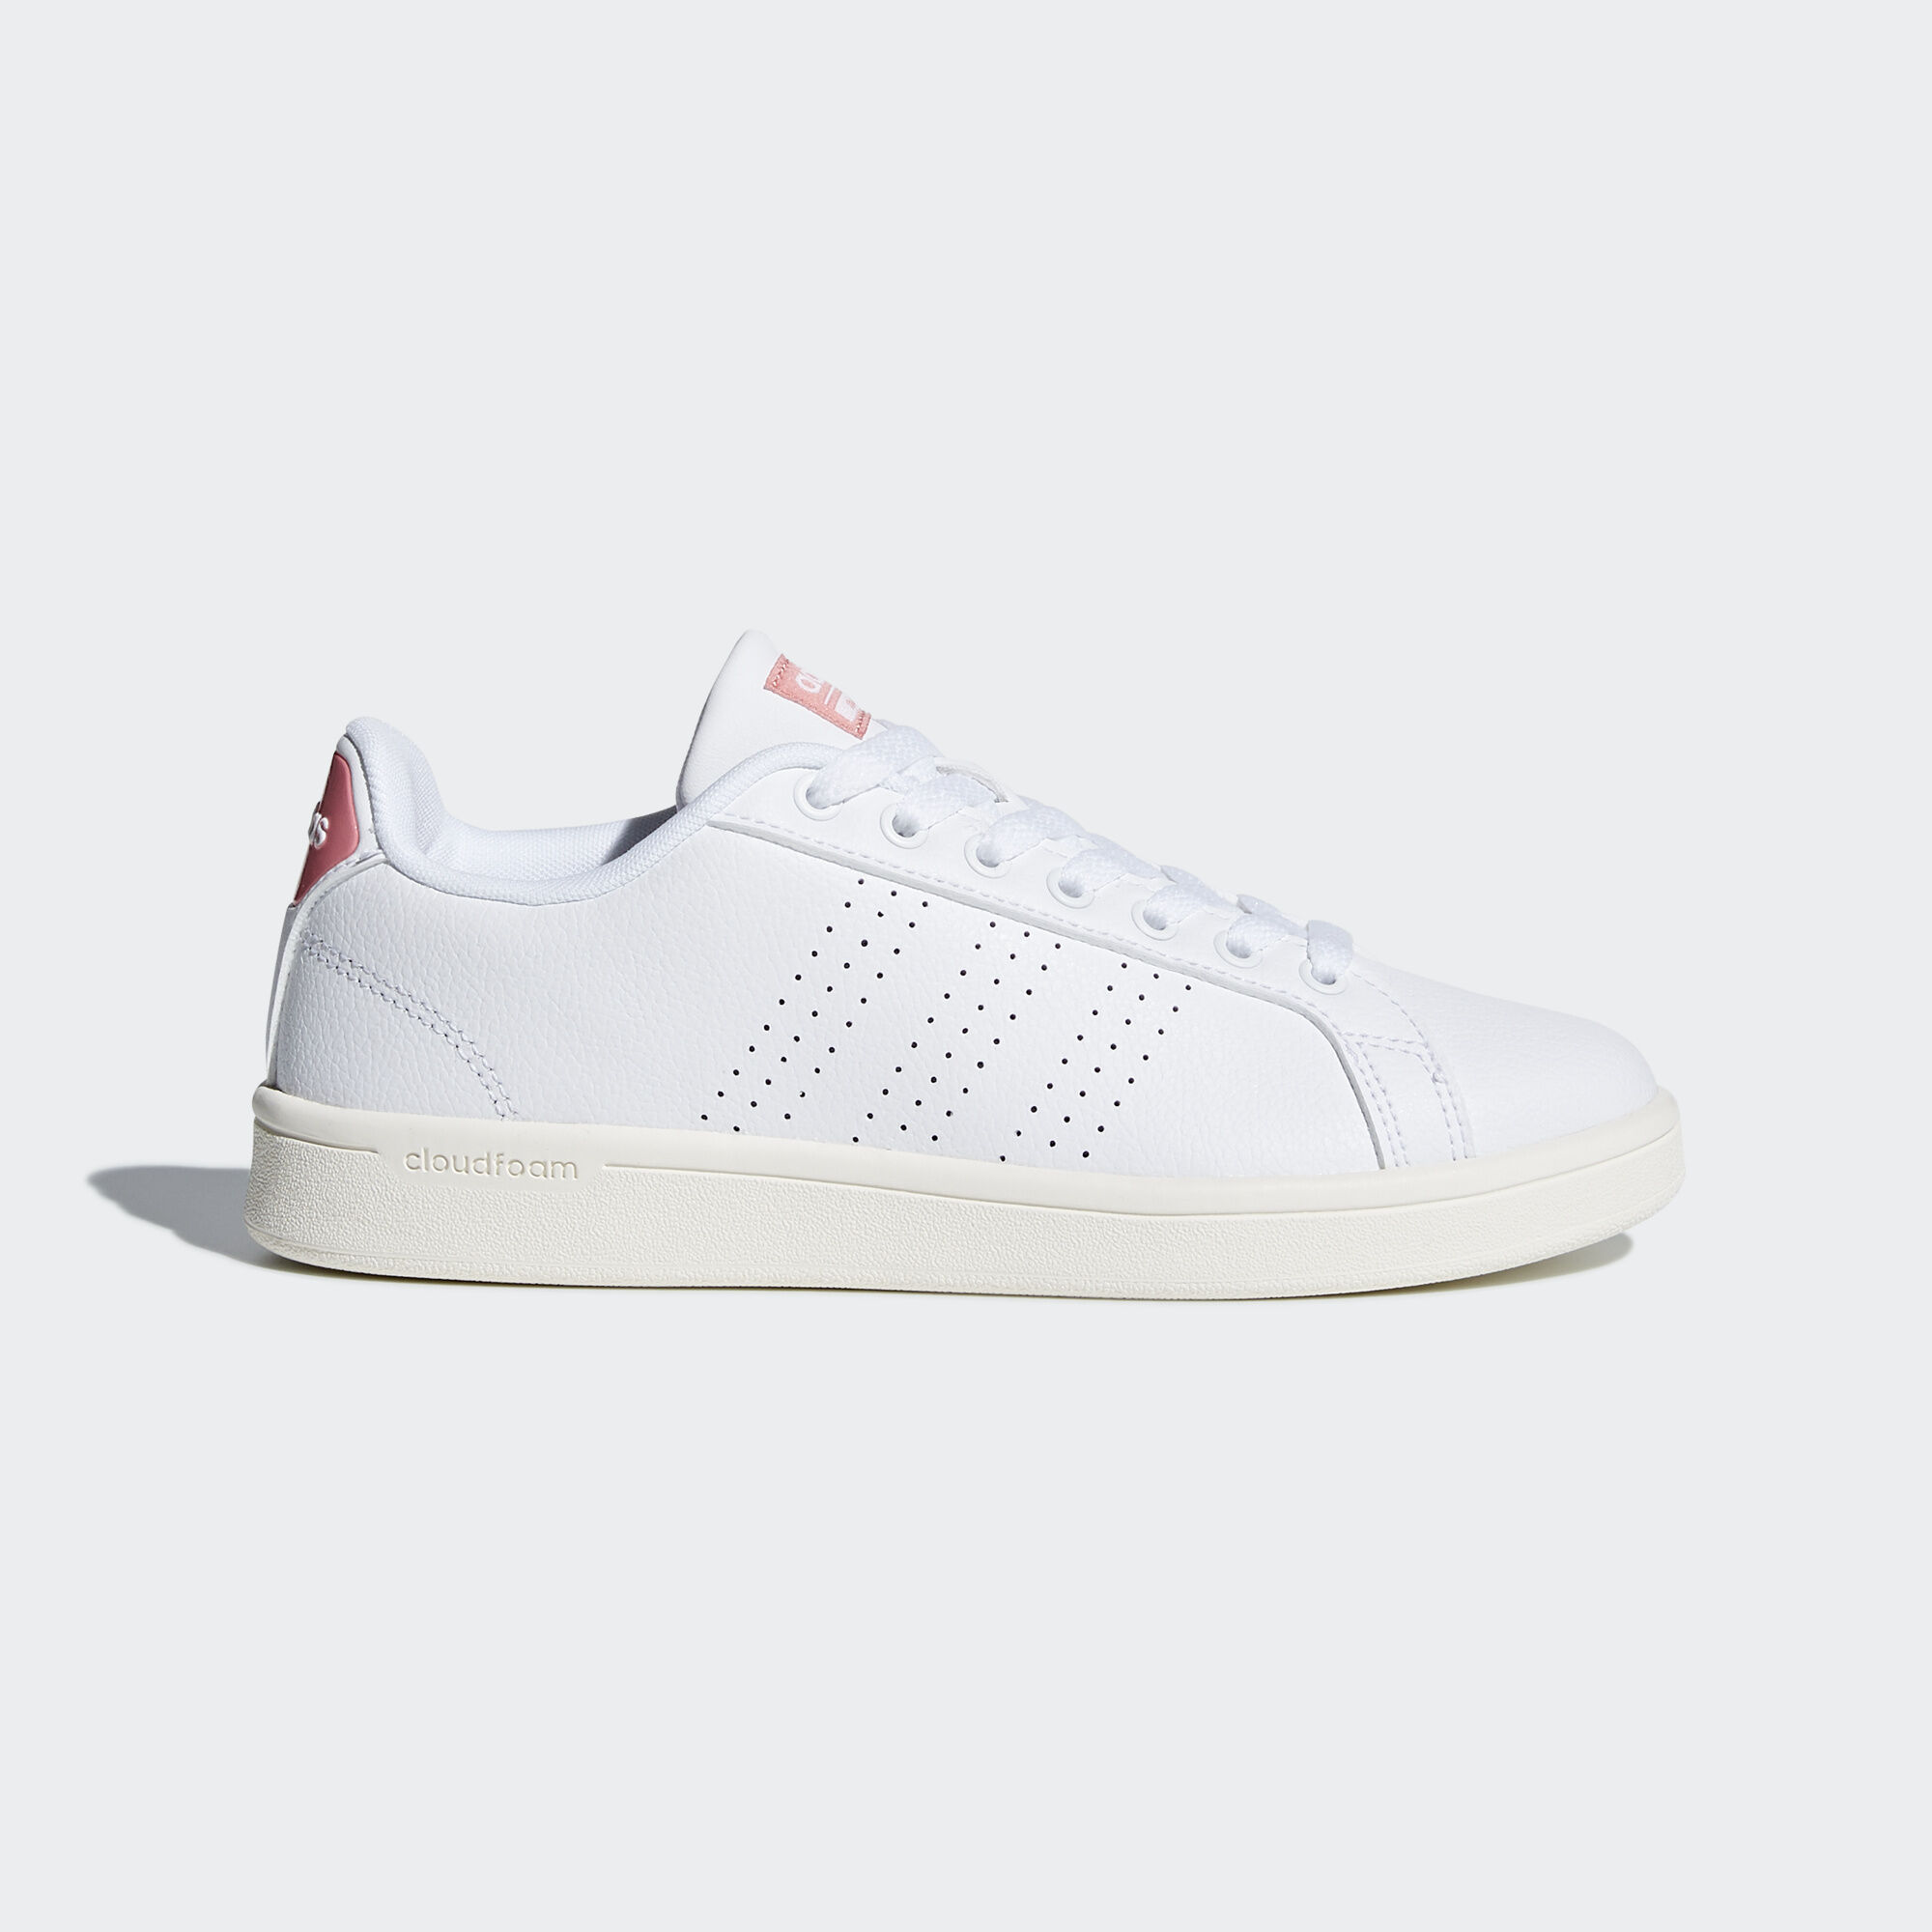 Adidas Neo White Rose Gold